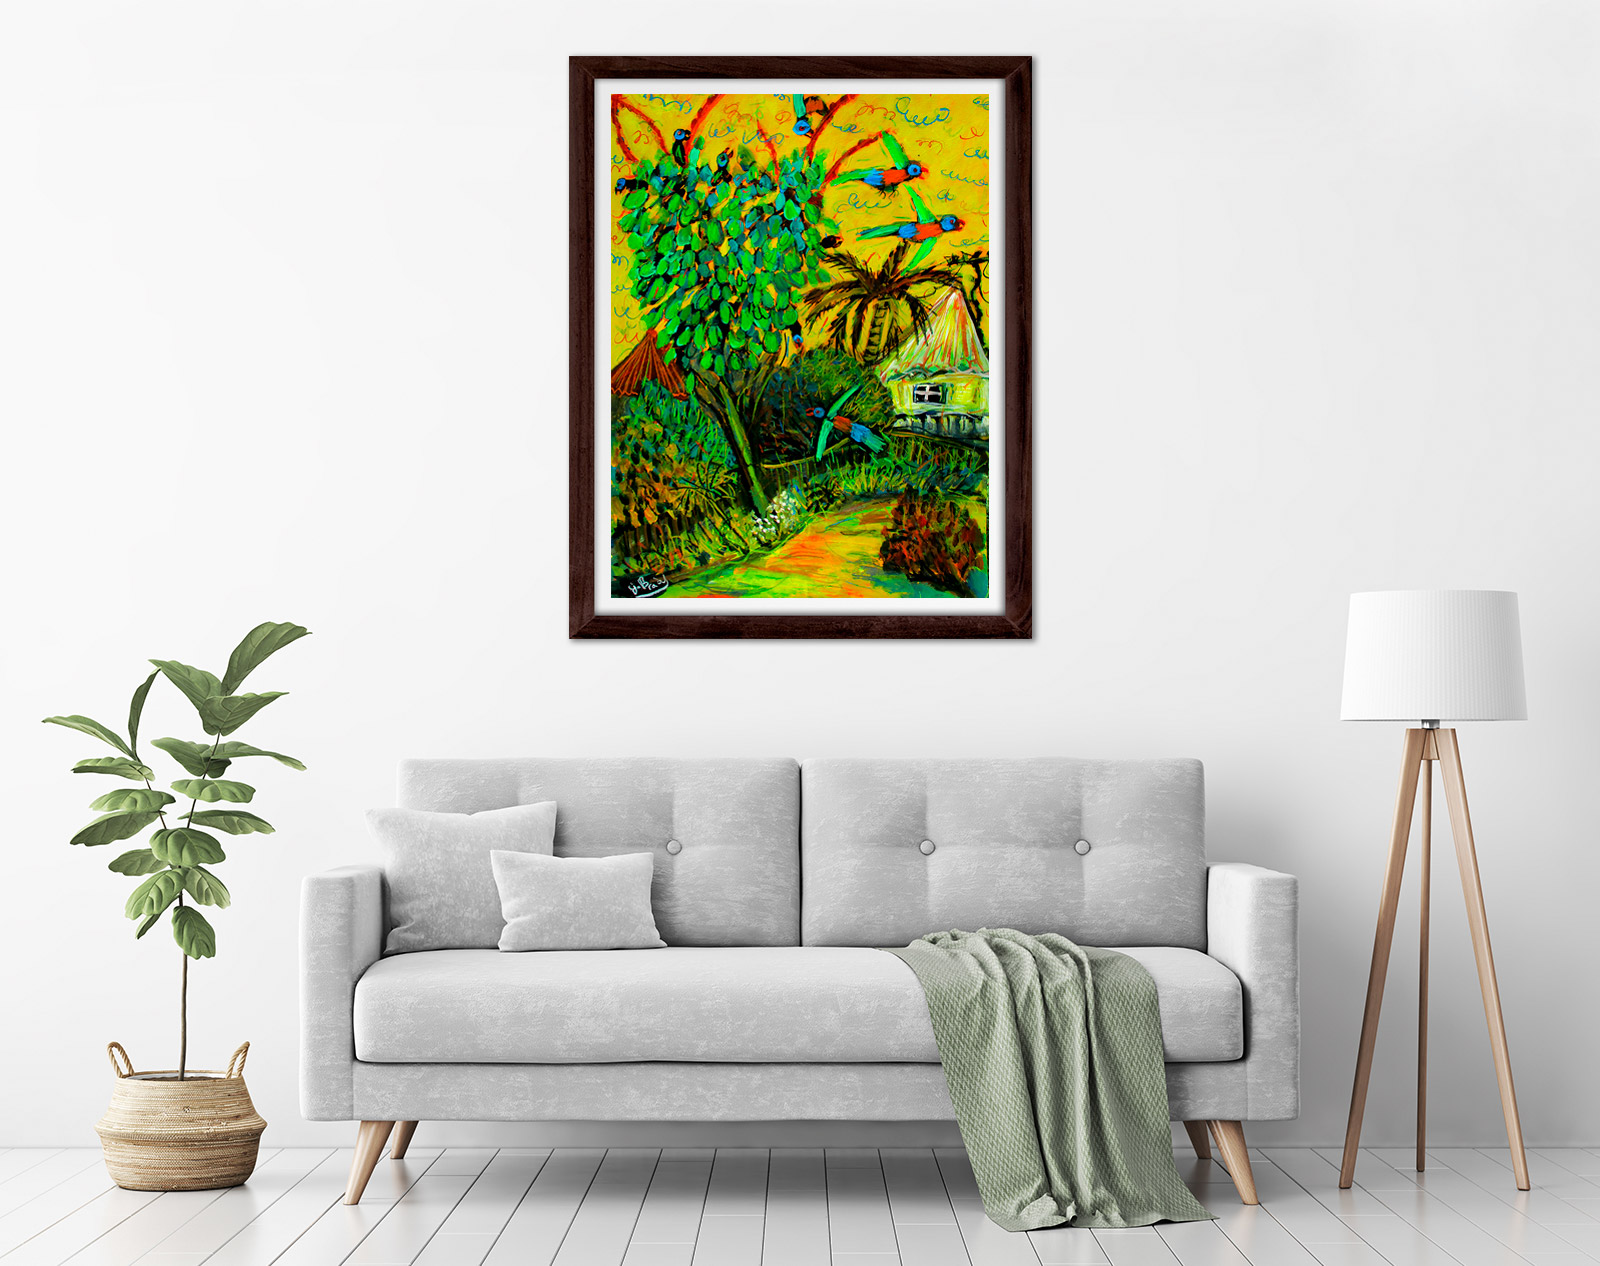 Glenn Brady - 'Lorikeets in the Umbrella Tree' Framed in a room